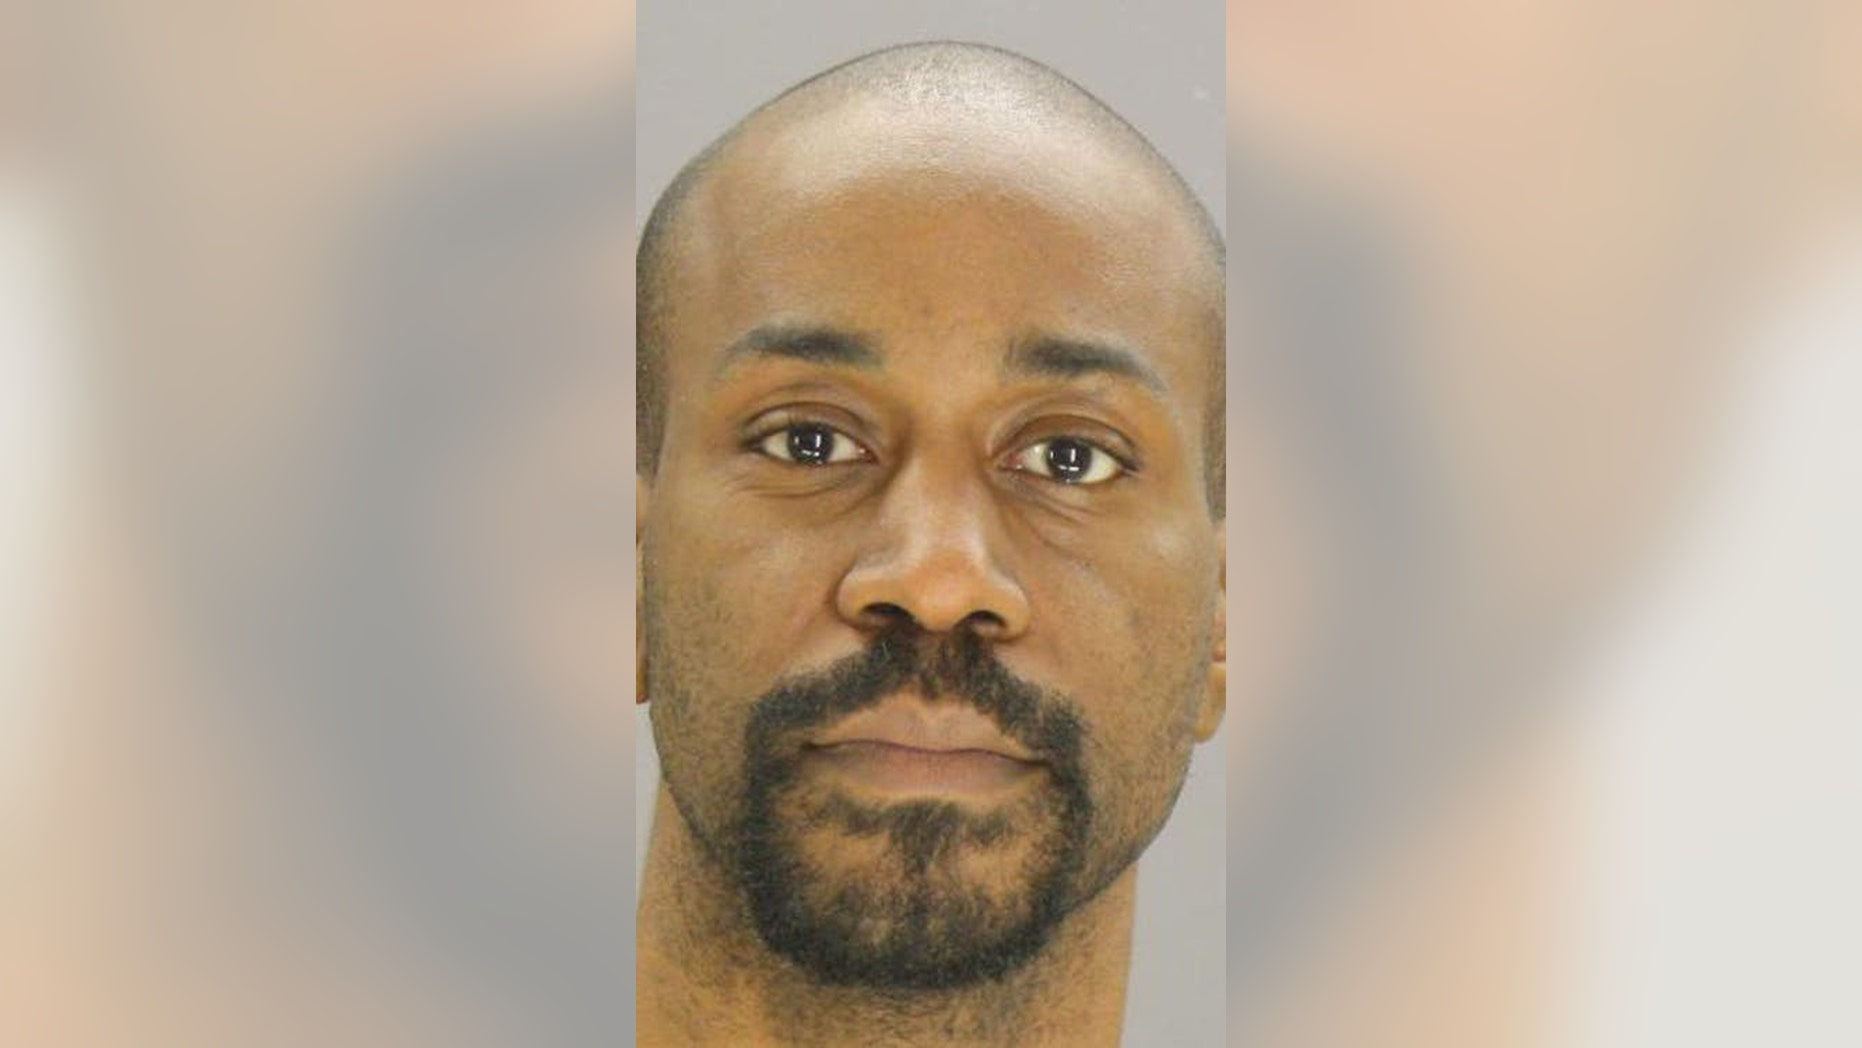 Eric Gerard McGinnis, 43, has beensentenced to eight years in prison on Wednesday after being found with a gun, partially made from a 3-D printer, and a hit list of U.S. lawmakers in a backpack